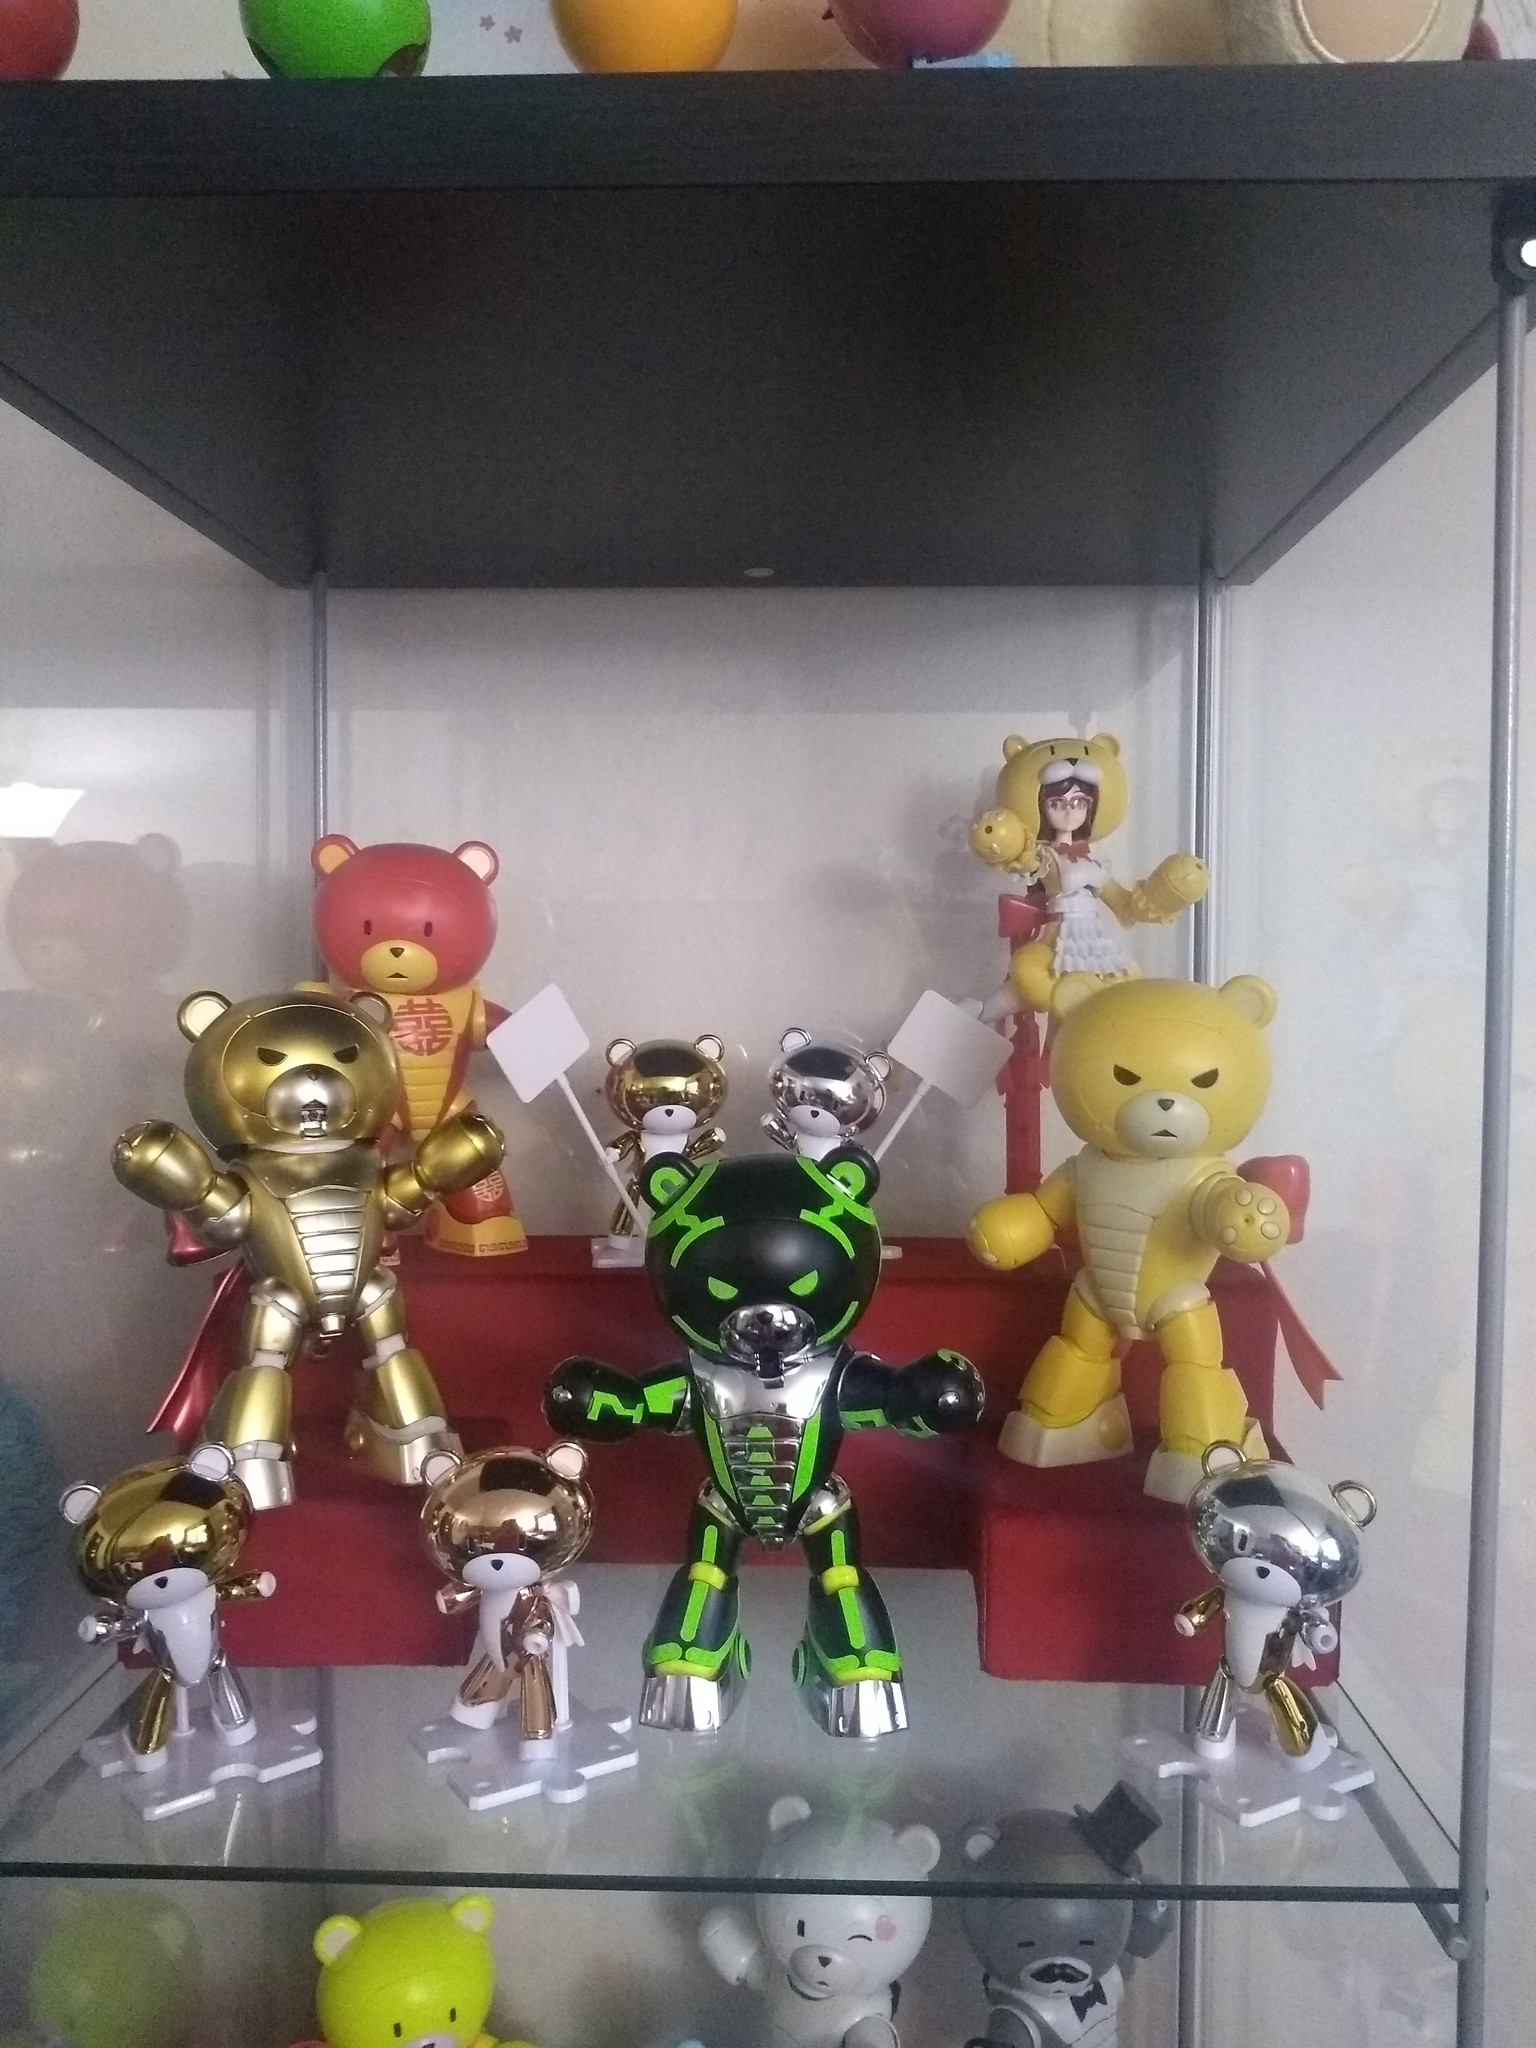 https://static.myfigurecollection.net/upload/pictures/2018/09/26/2066546.jpeg